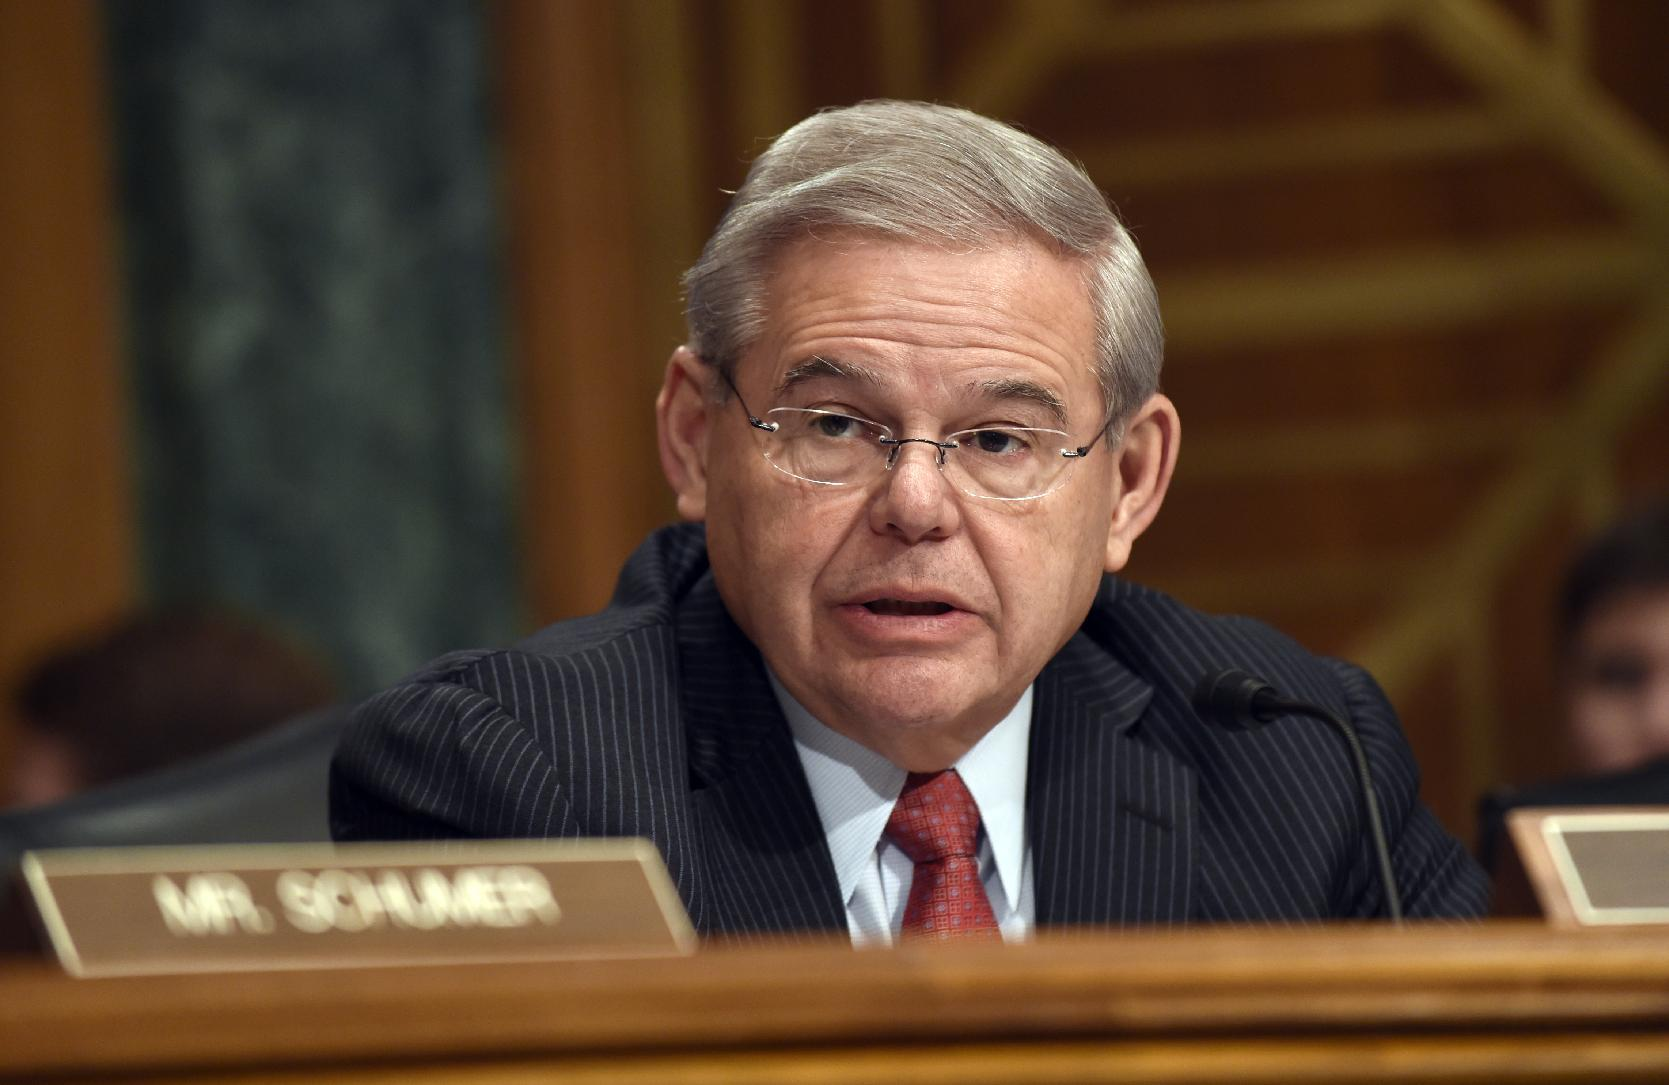 N.J. Sen. Bob Menendez to face criminal corruption charges: reports